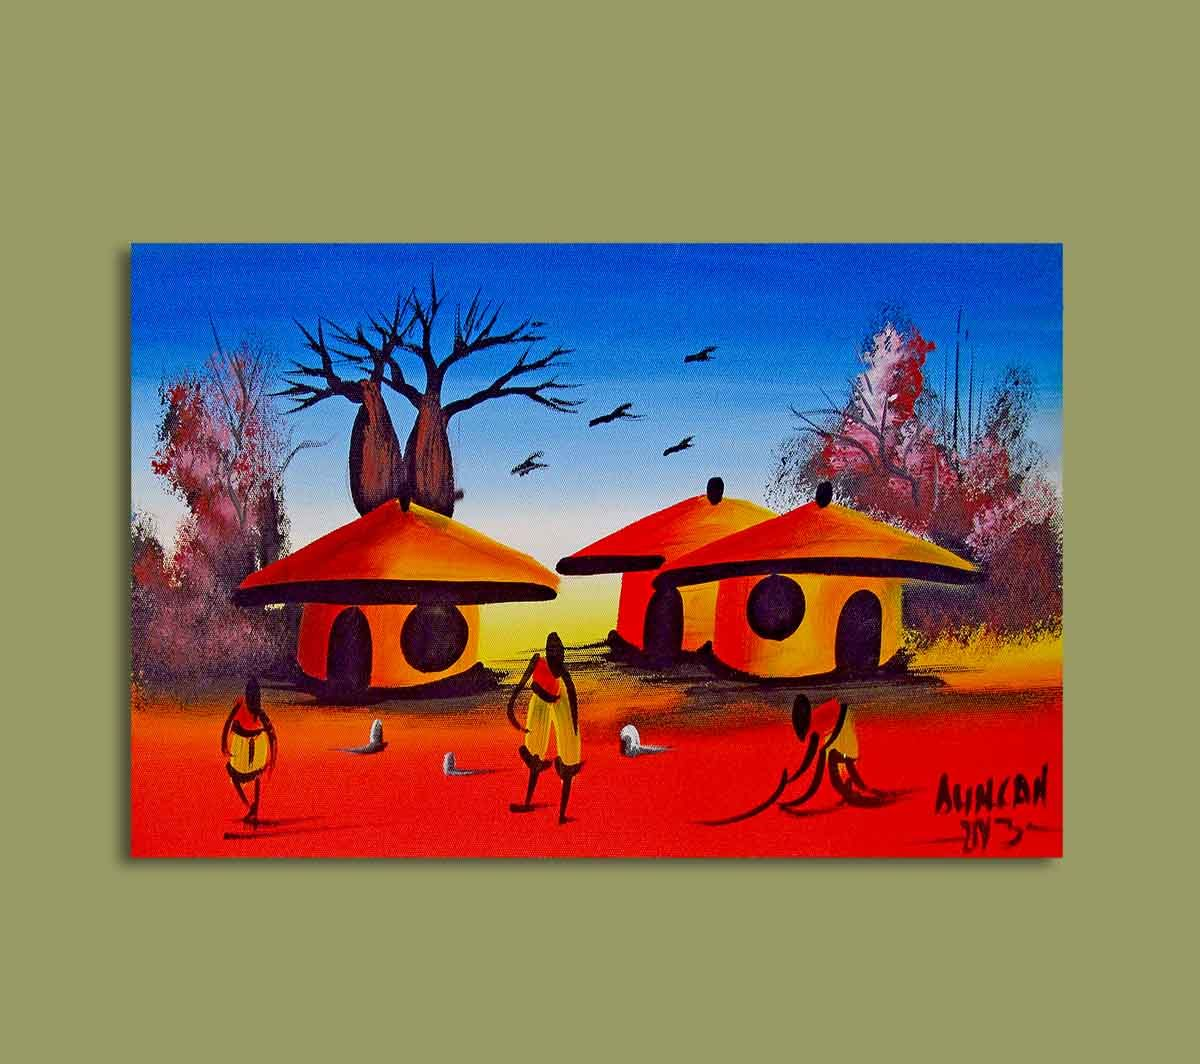 south african township mask art - Google Search